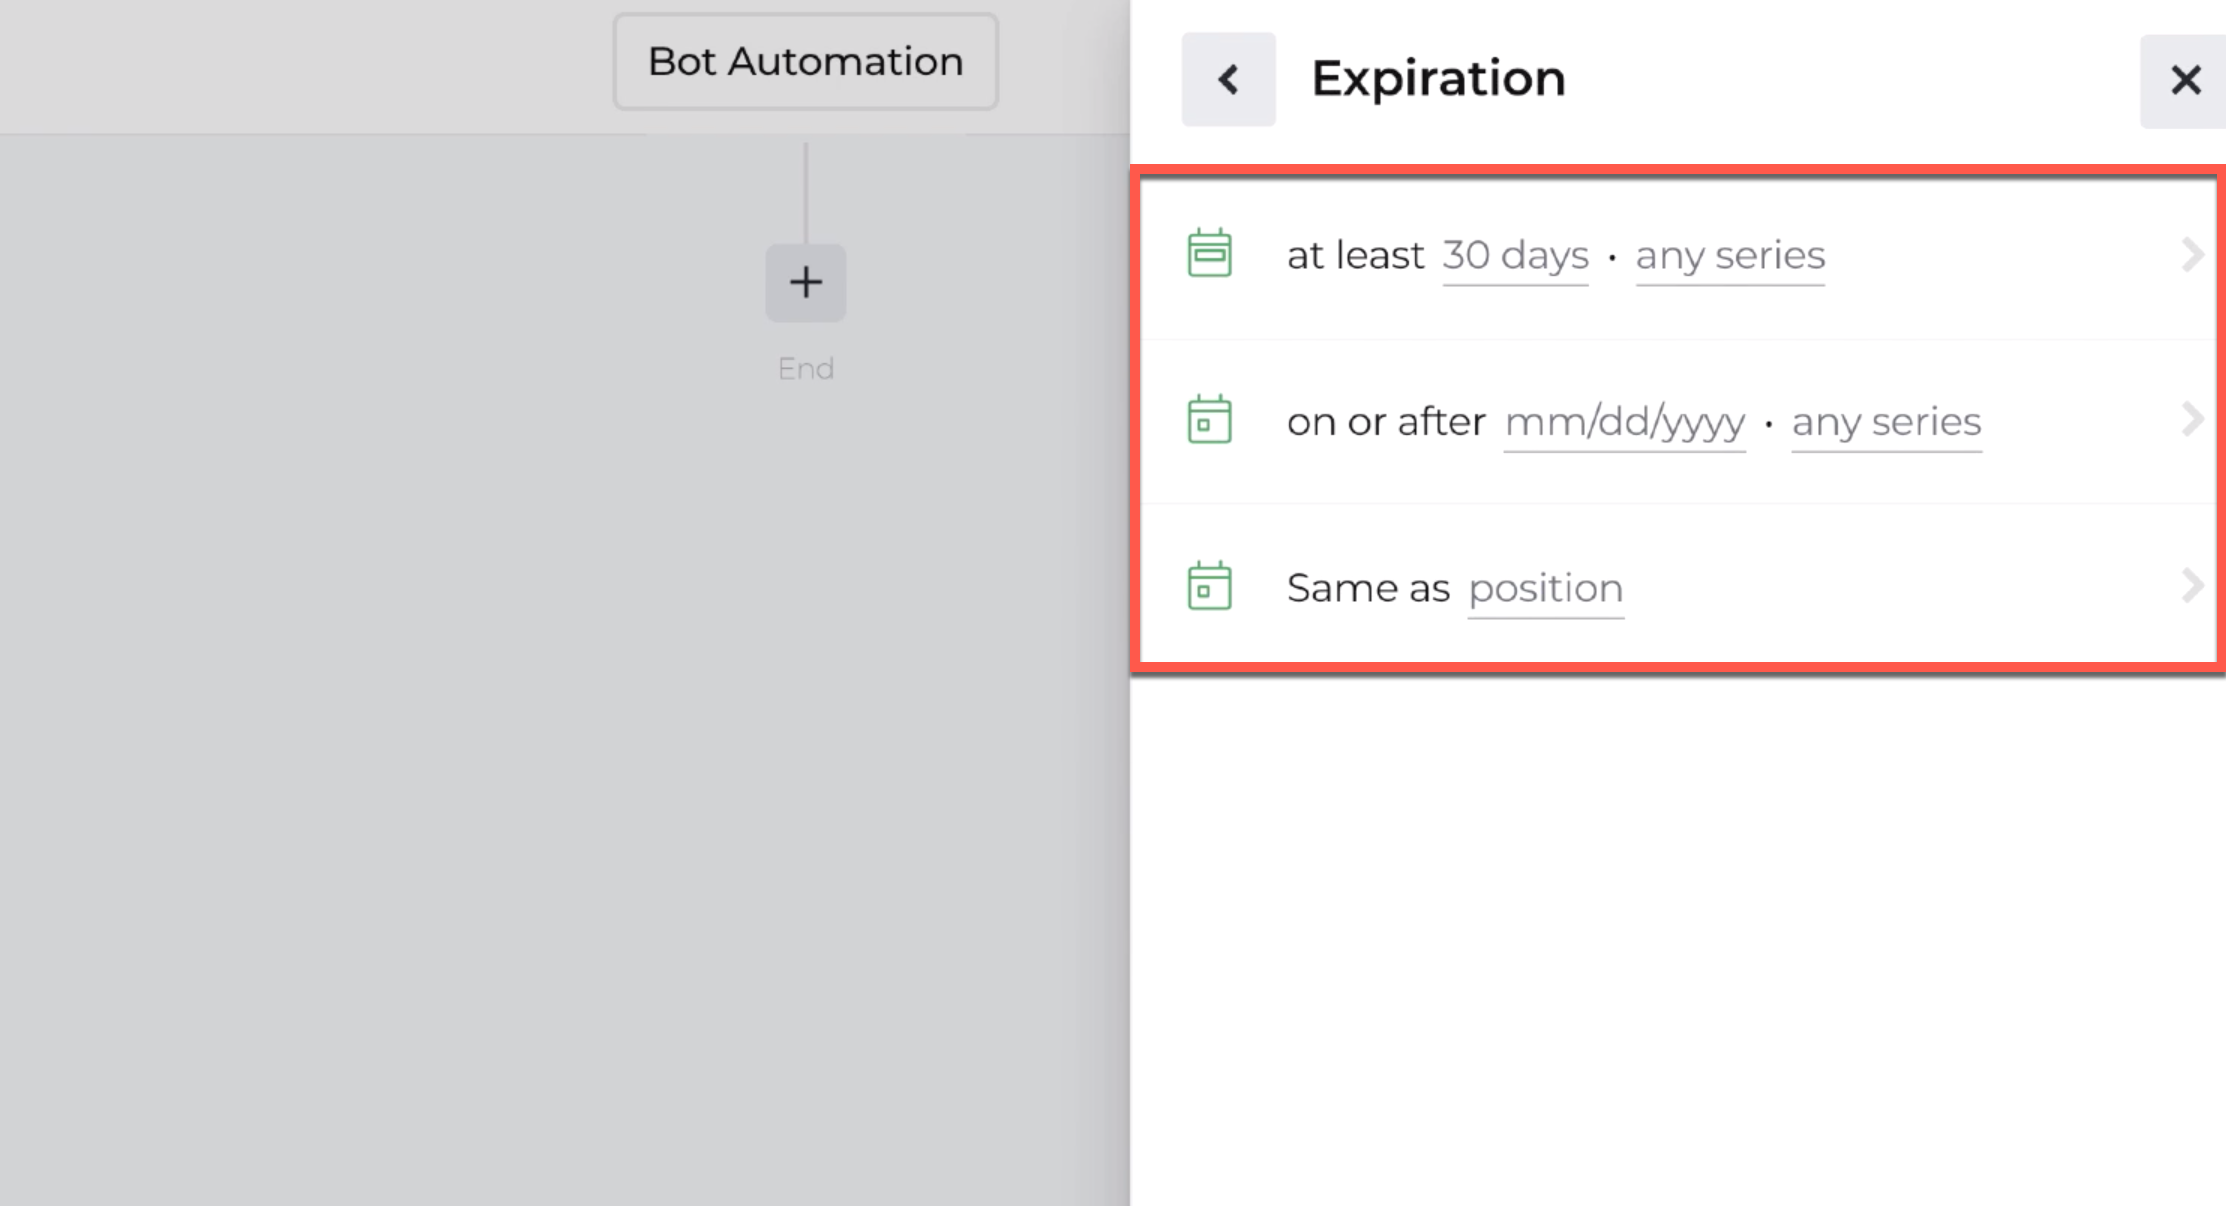 Screenshot displaying expiration options available with the open position action